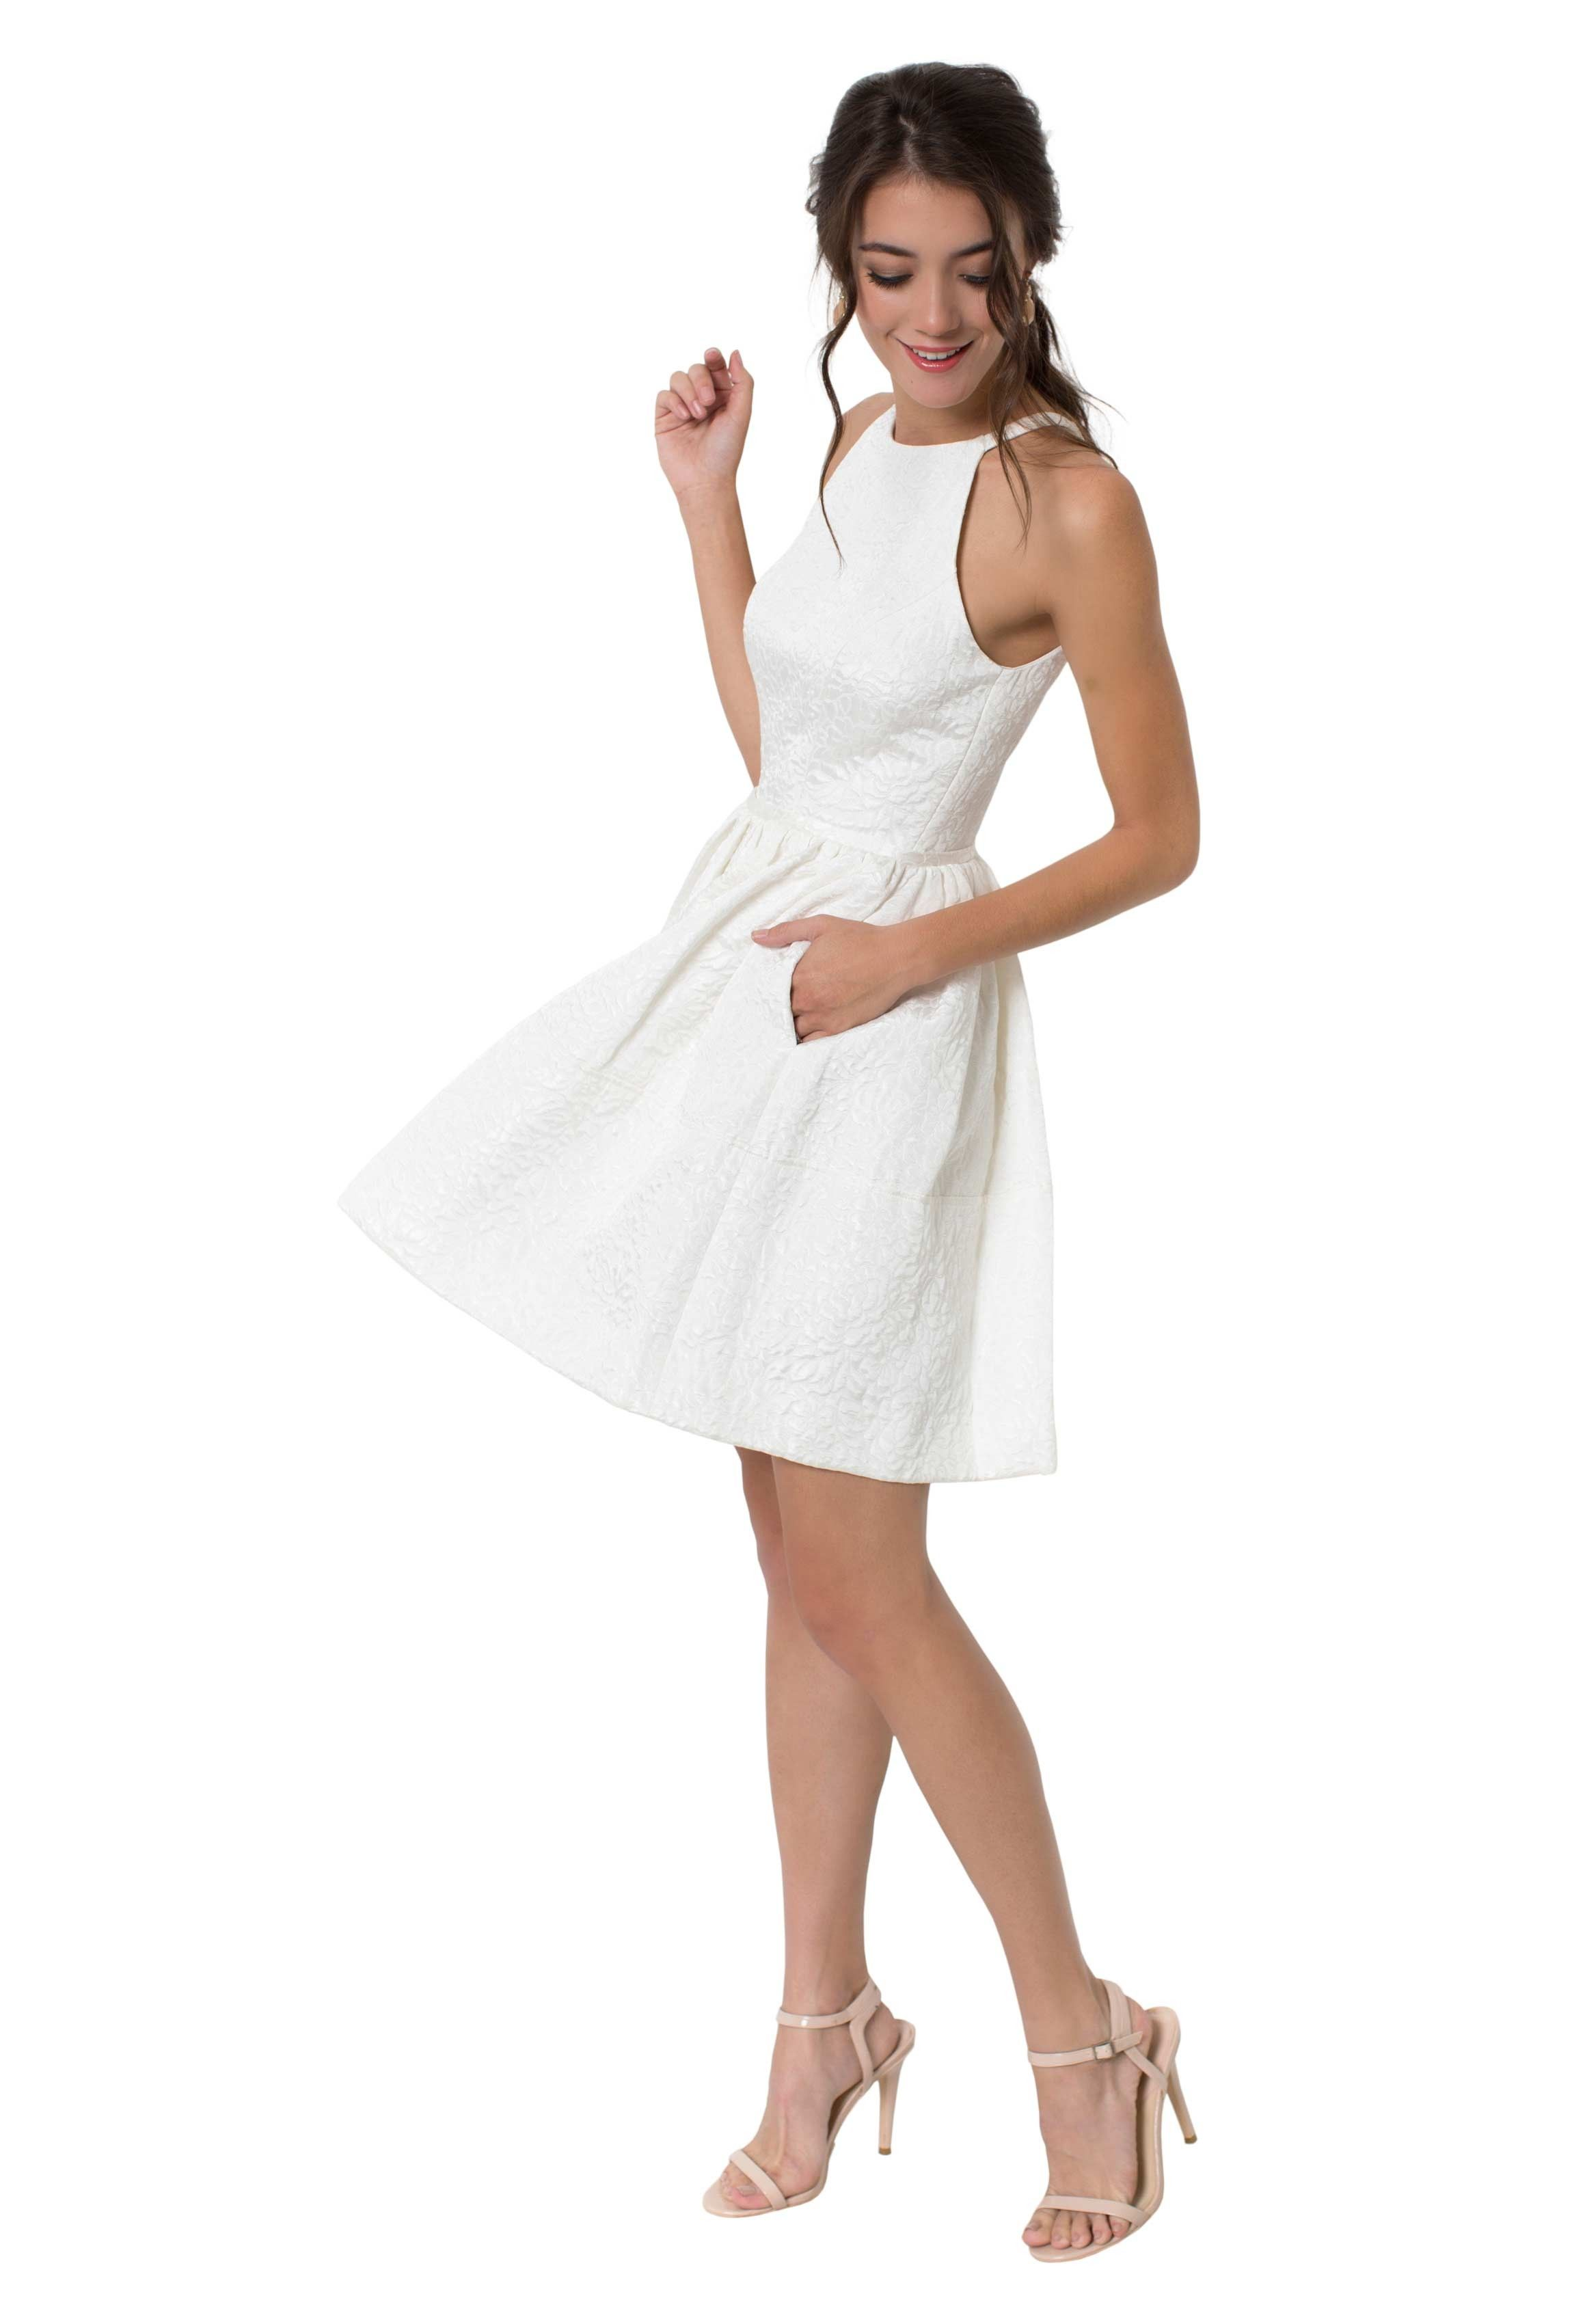 9014dce1a31 A short white halter top dress with full skirt and pockets for a modern  bride. Affordable designer bridesmaid dresses to buy or rent at Vow To Be  Chic.